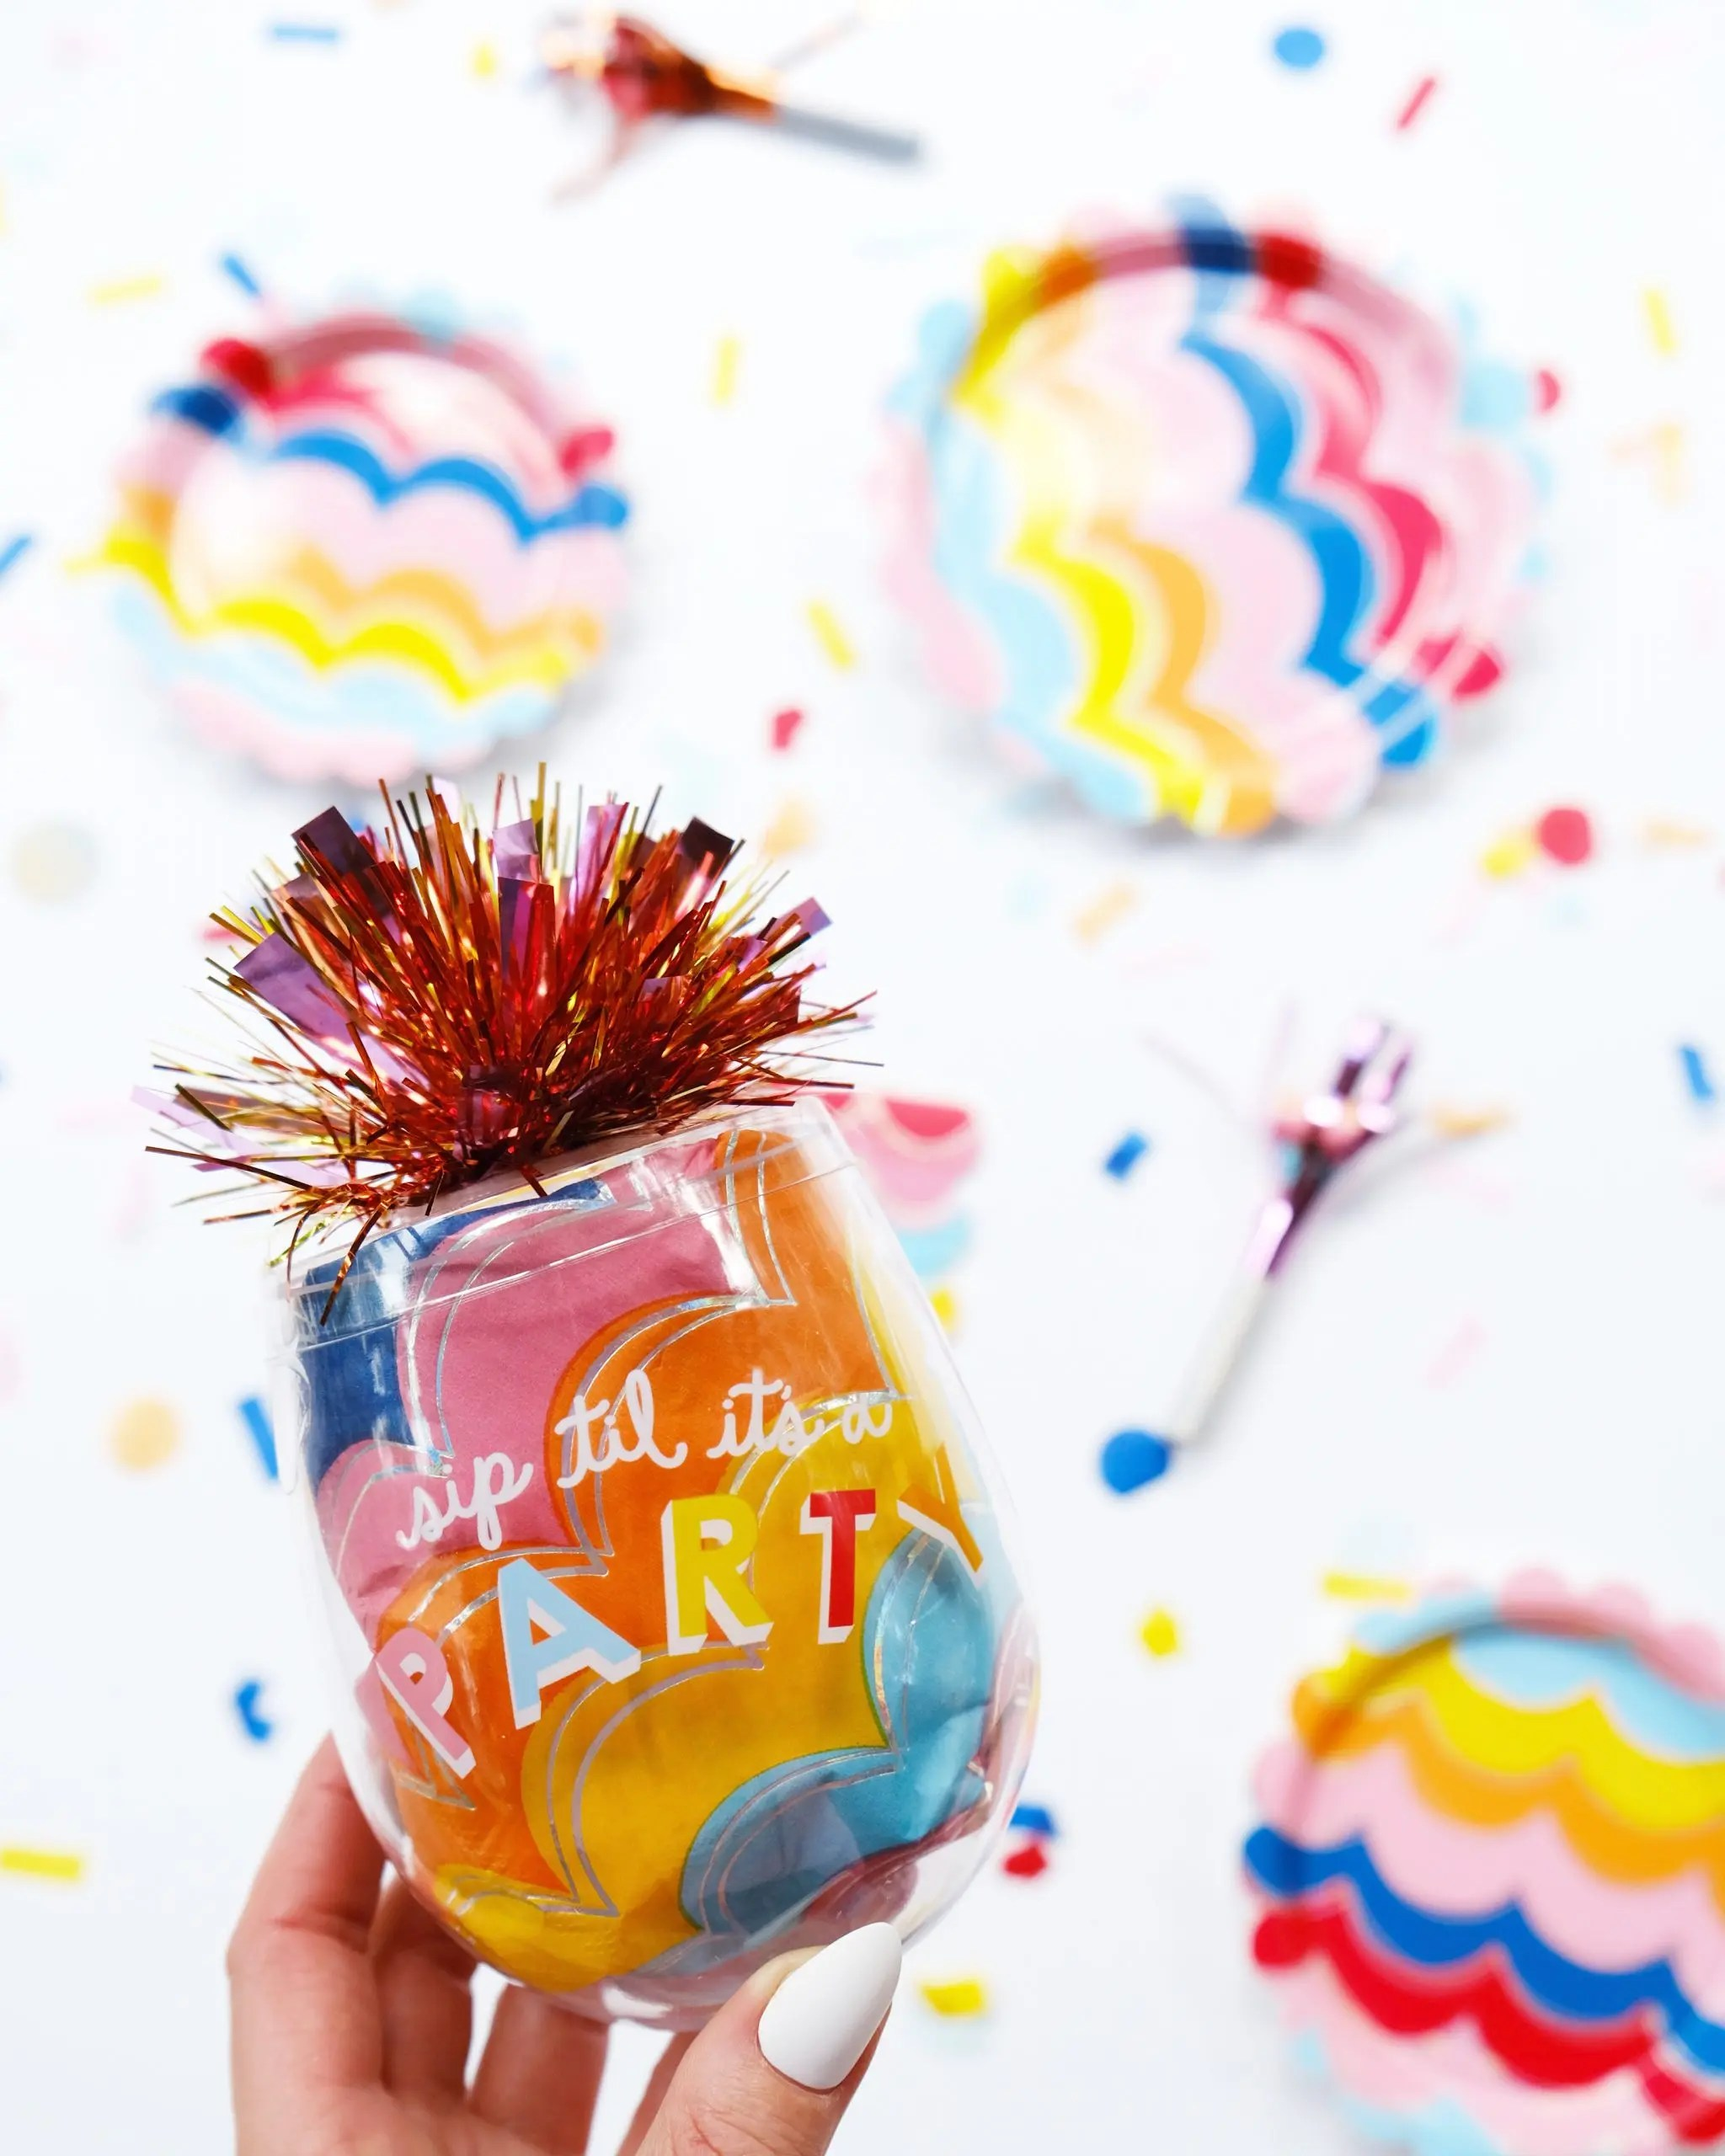 packed party at walmart - colorful party supplies